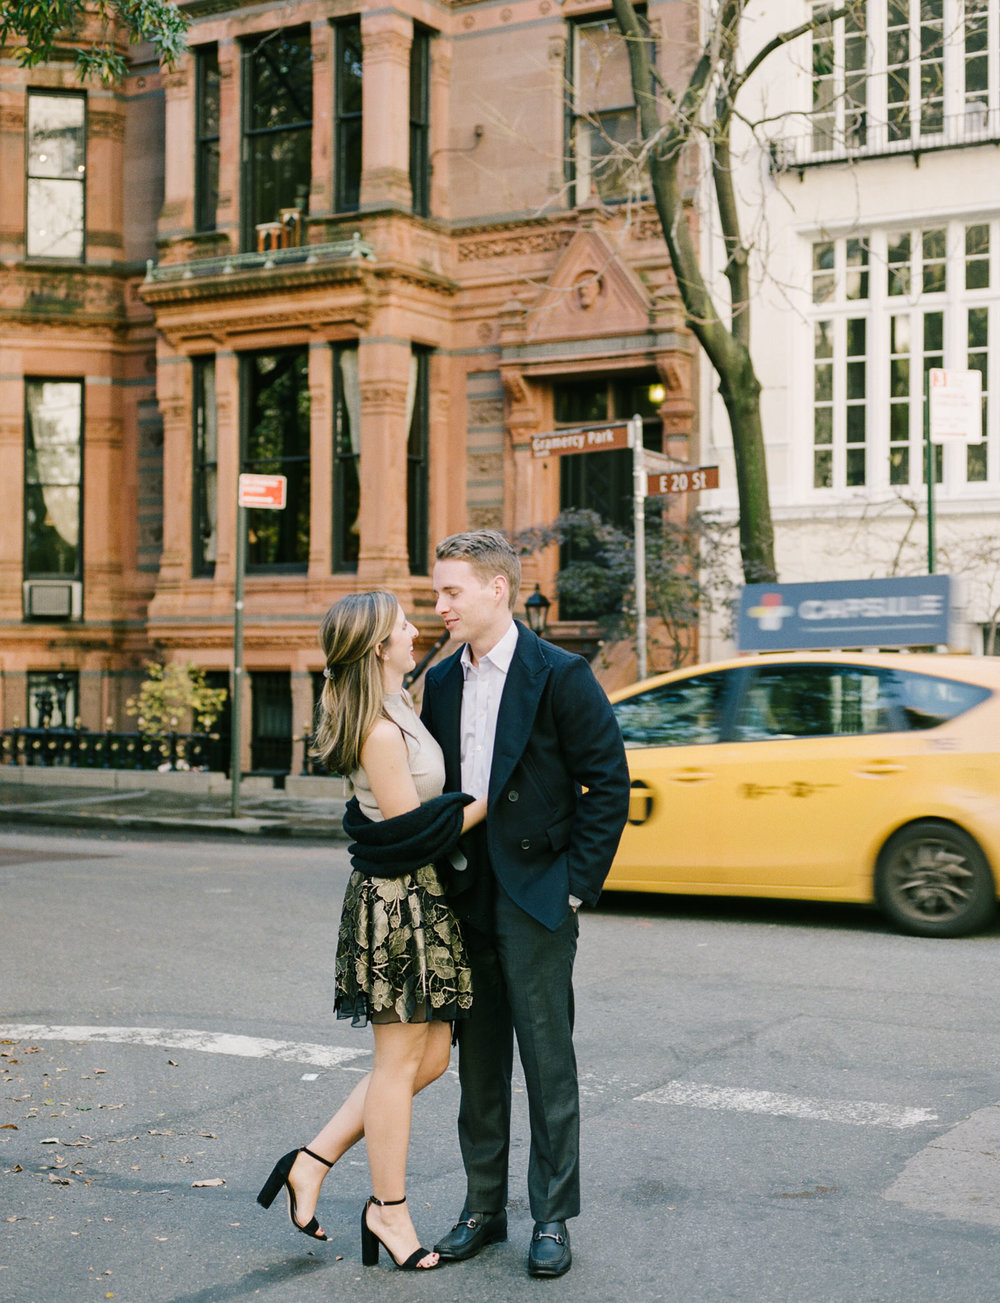 Central-park-fall-engagement-session-by Tanya Isaeva-92.jpg